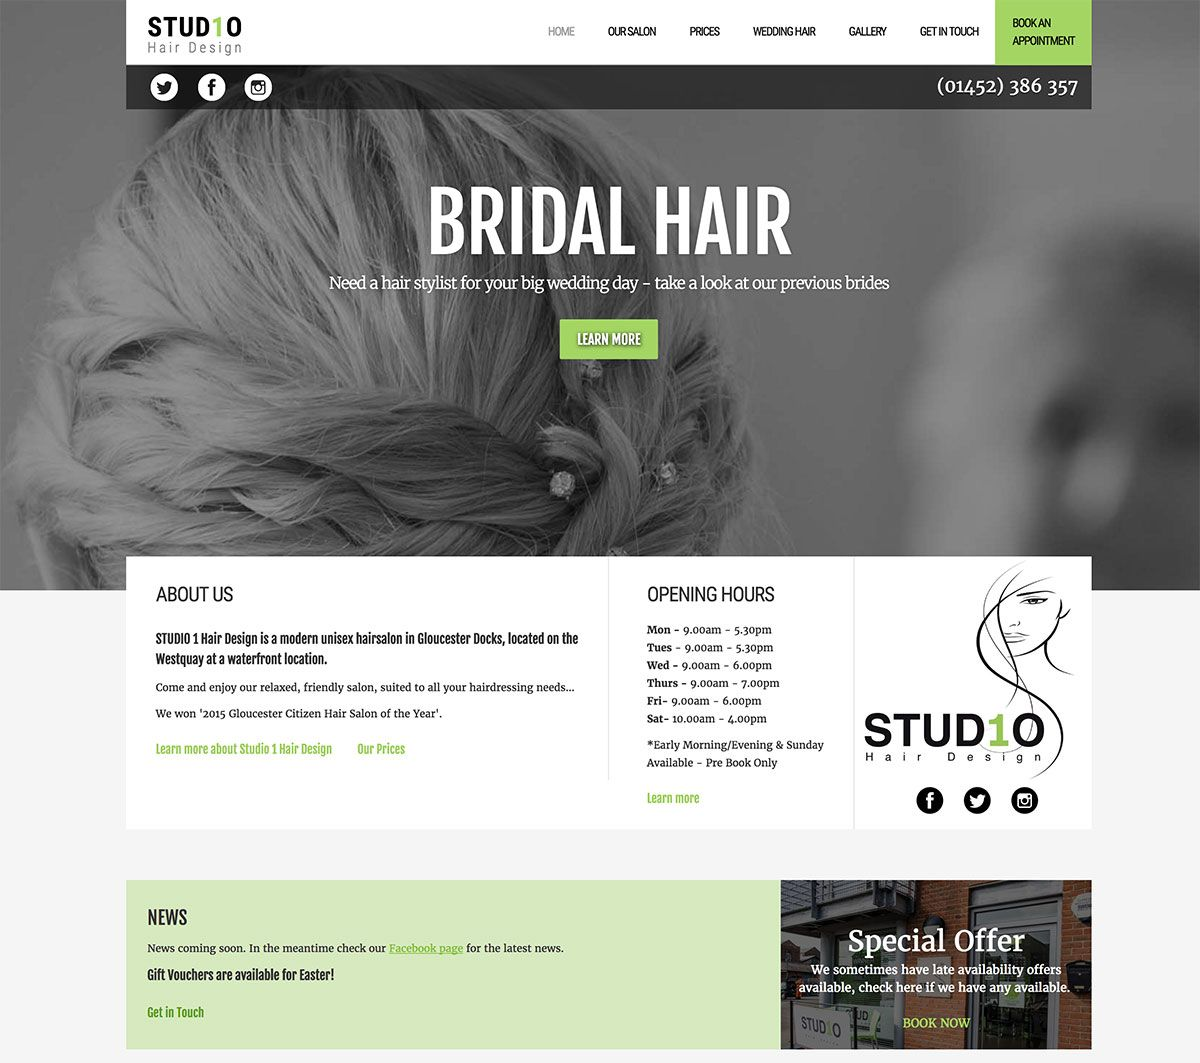 Pin By Emwonline Web Design On Business Websites Created By Us In 2020 Big Wedding Hair Designs Small Business Website